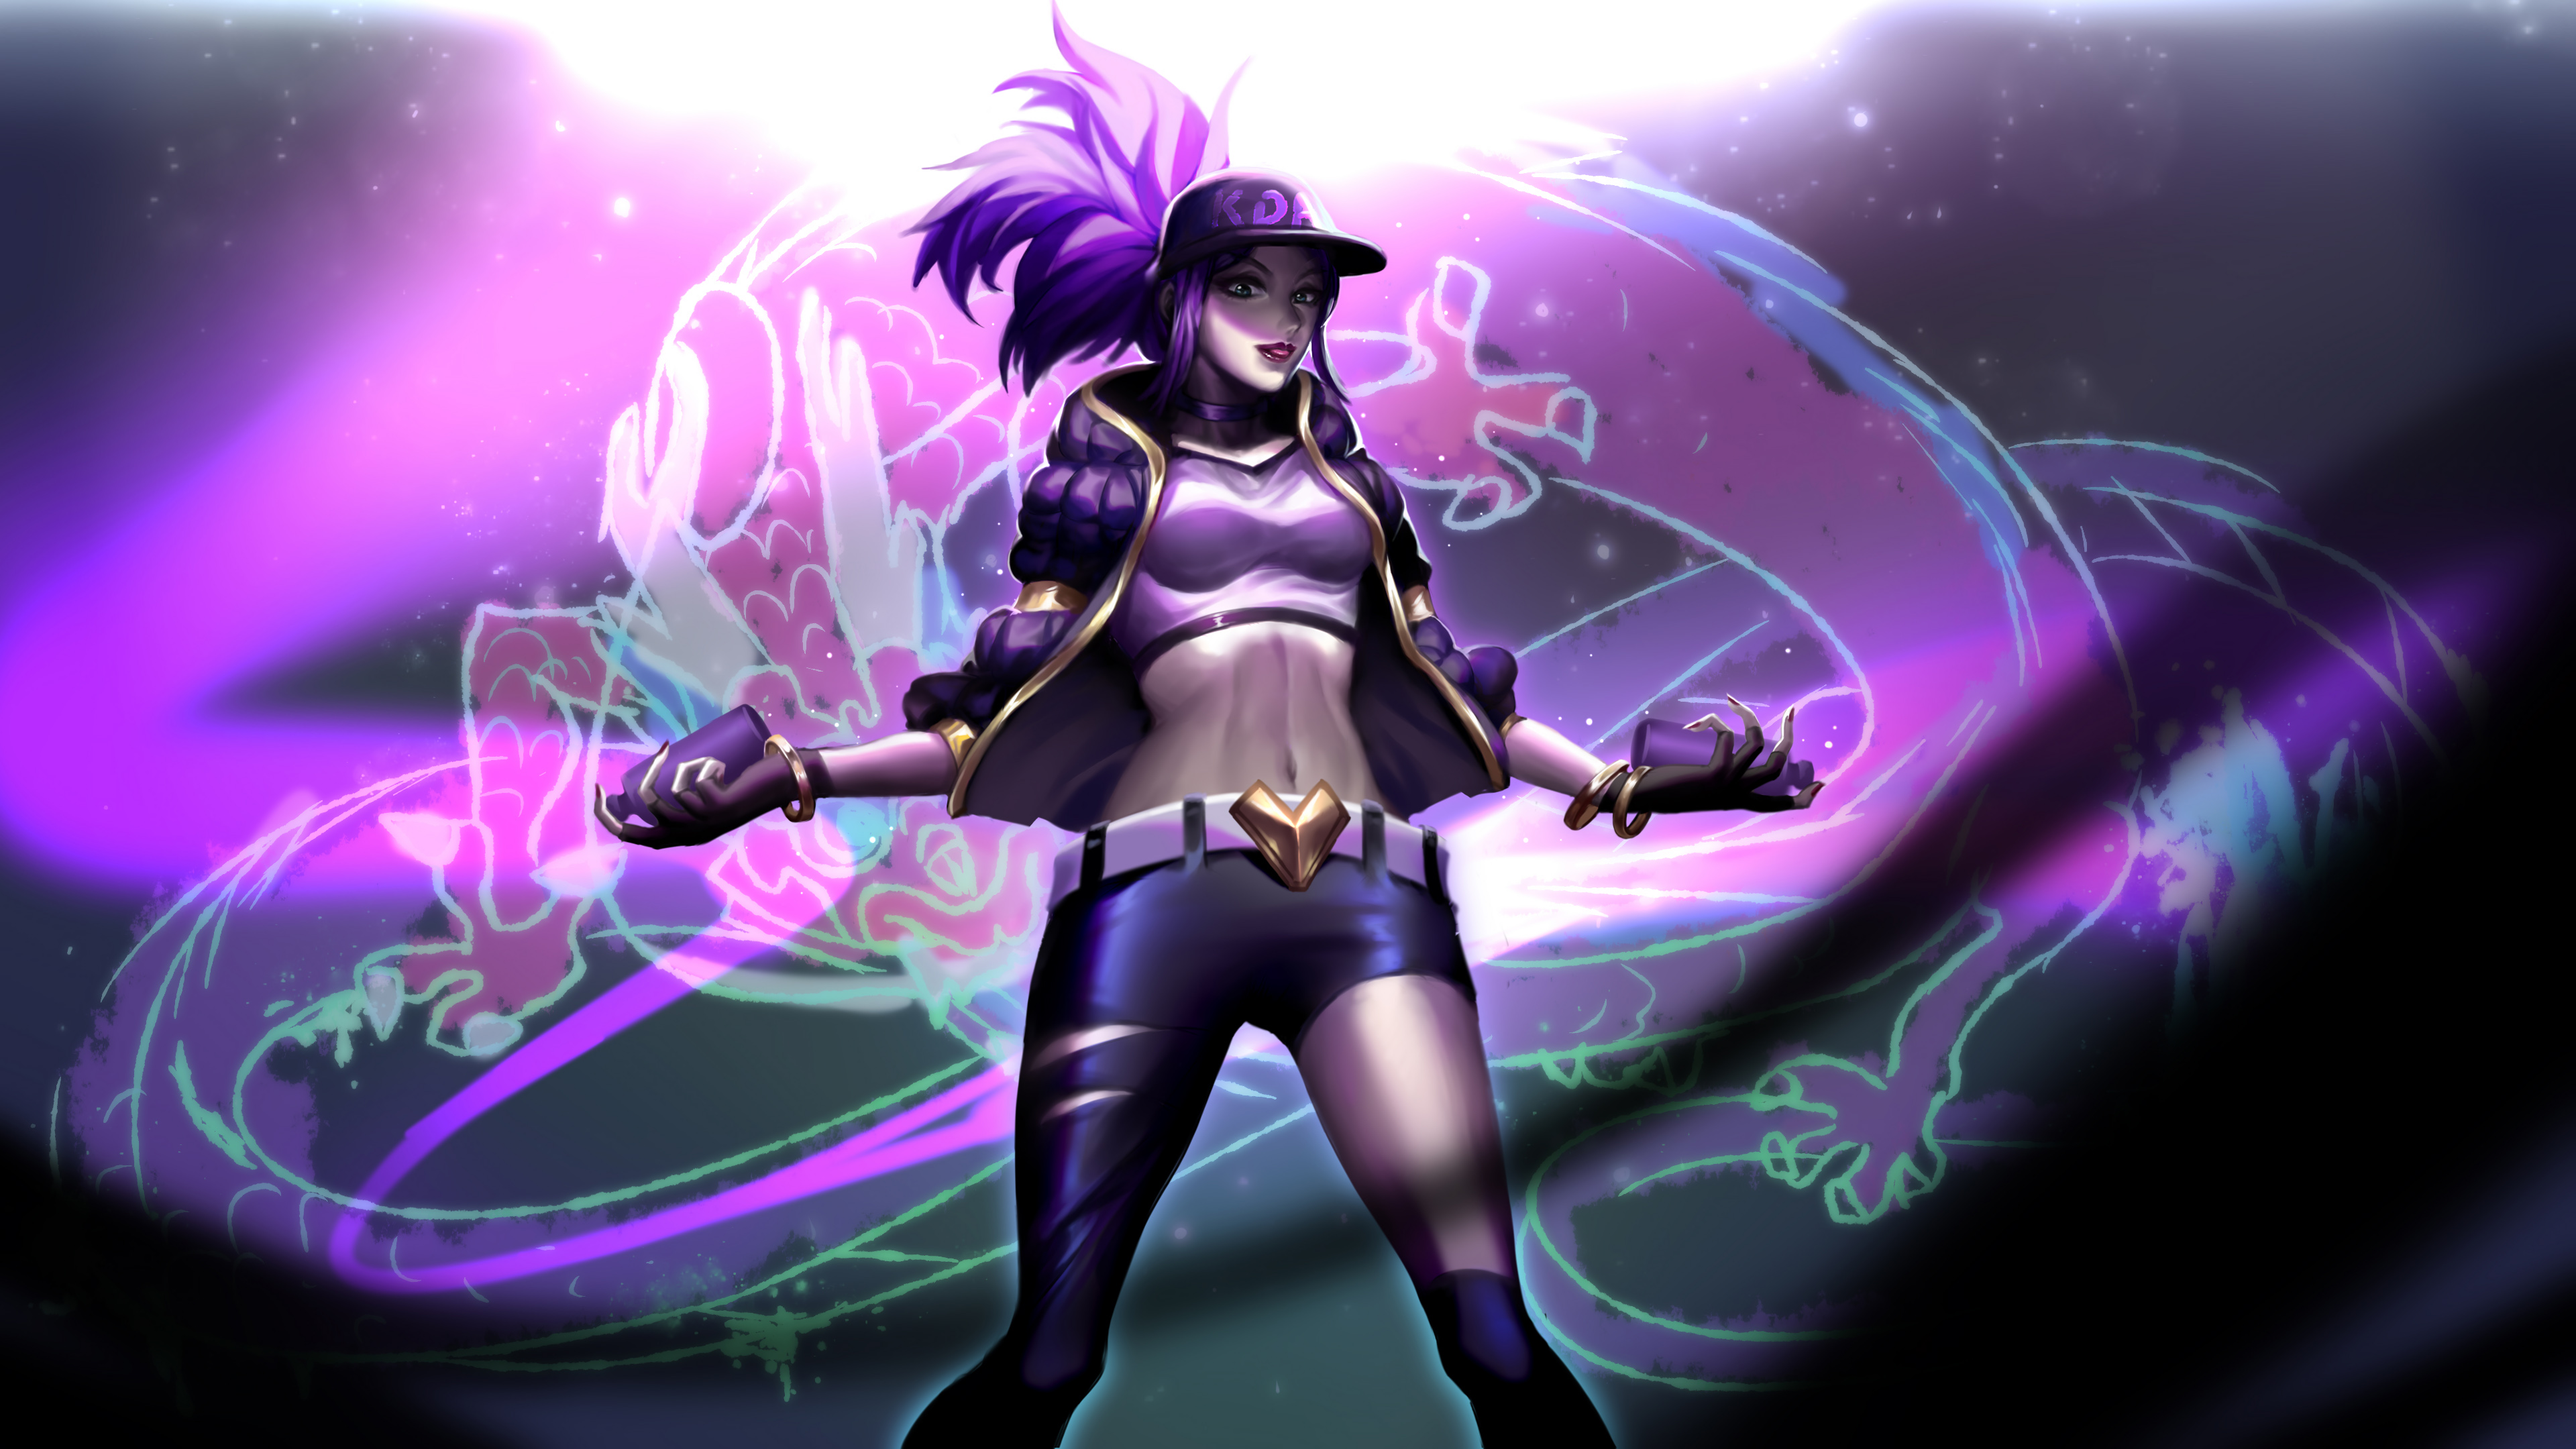 1920x1200 Kda Akali 1080p Resolution Hd 4k Wallpapers Images Backgrounds Photos And Pictures